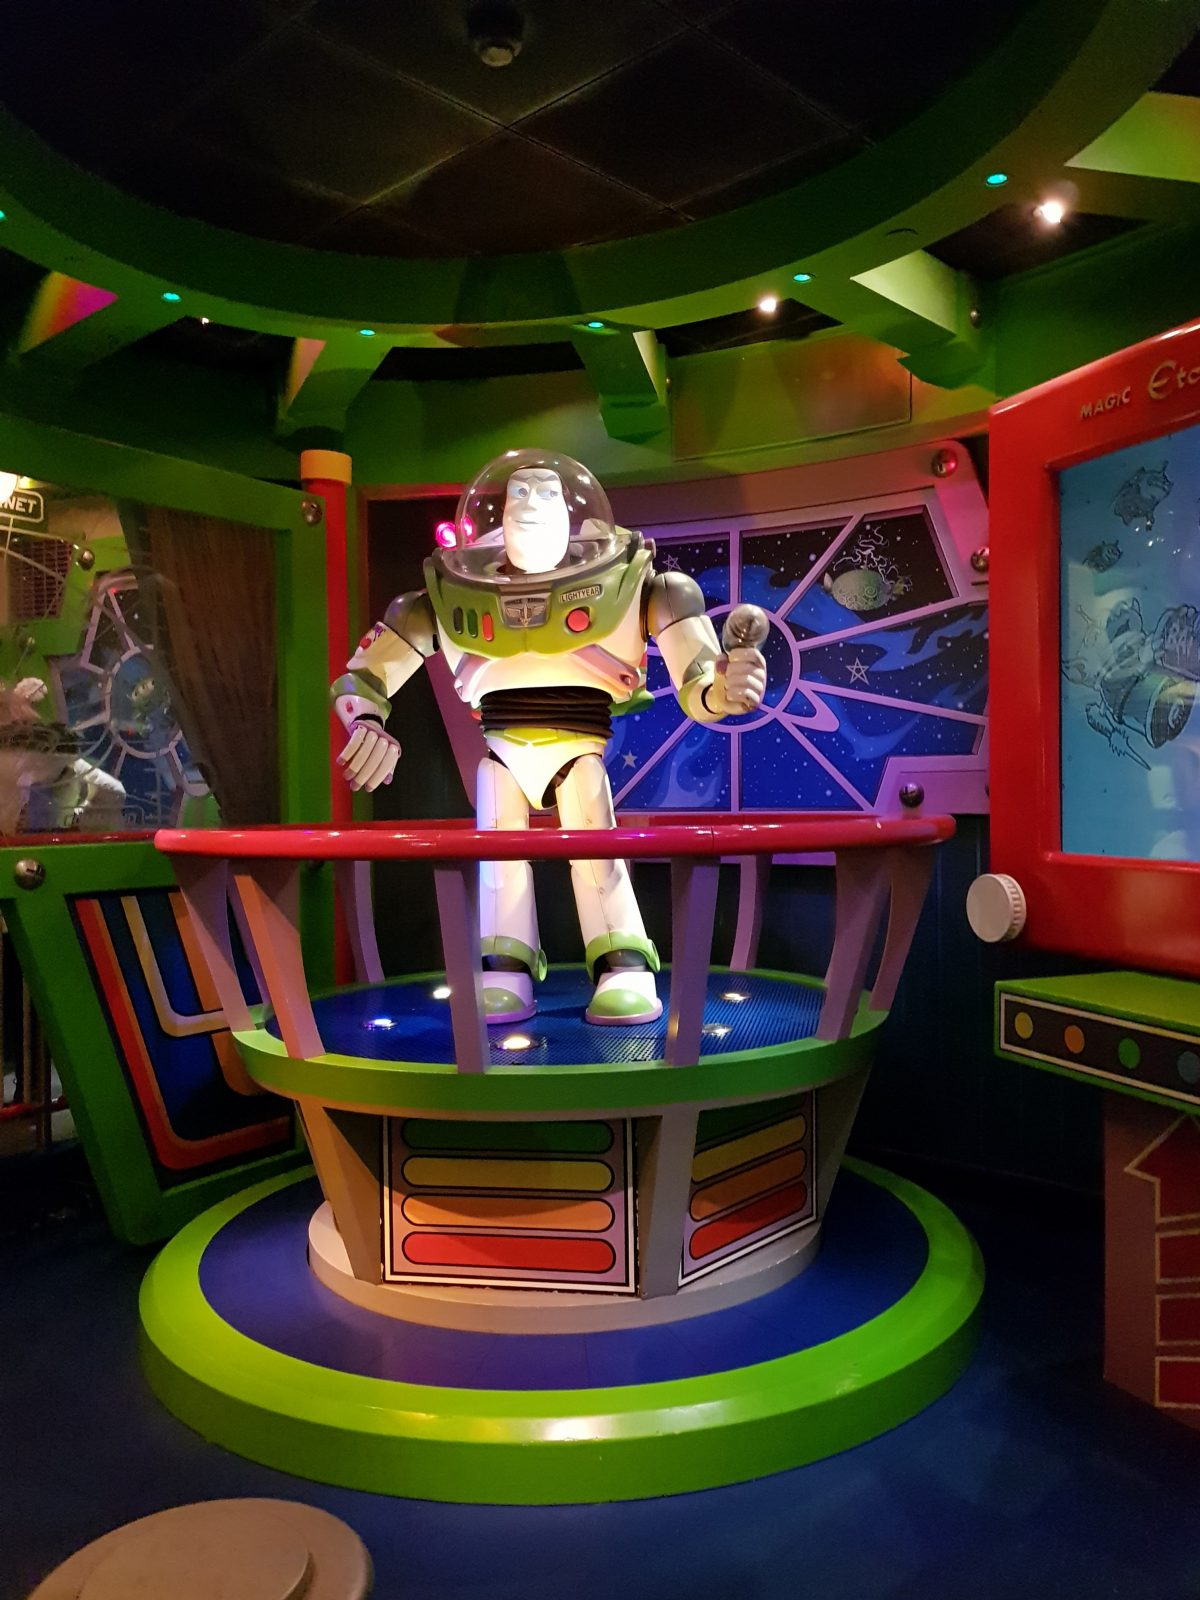 Buzz Lightyear giving the space cadets a briefing before the ride at Disneyland Paris